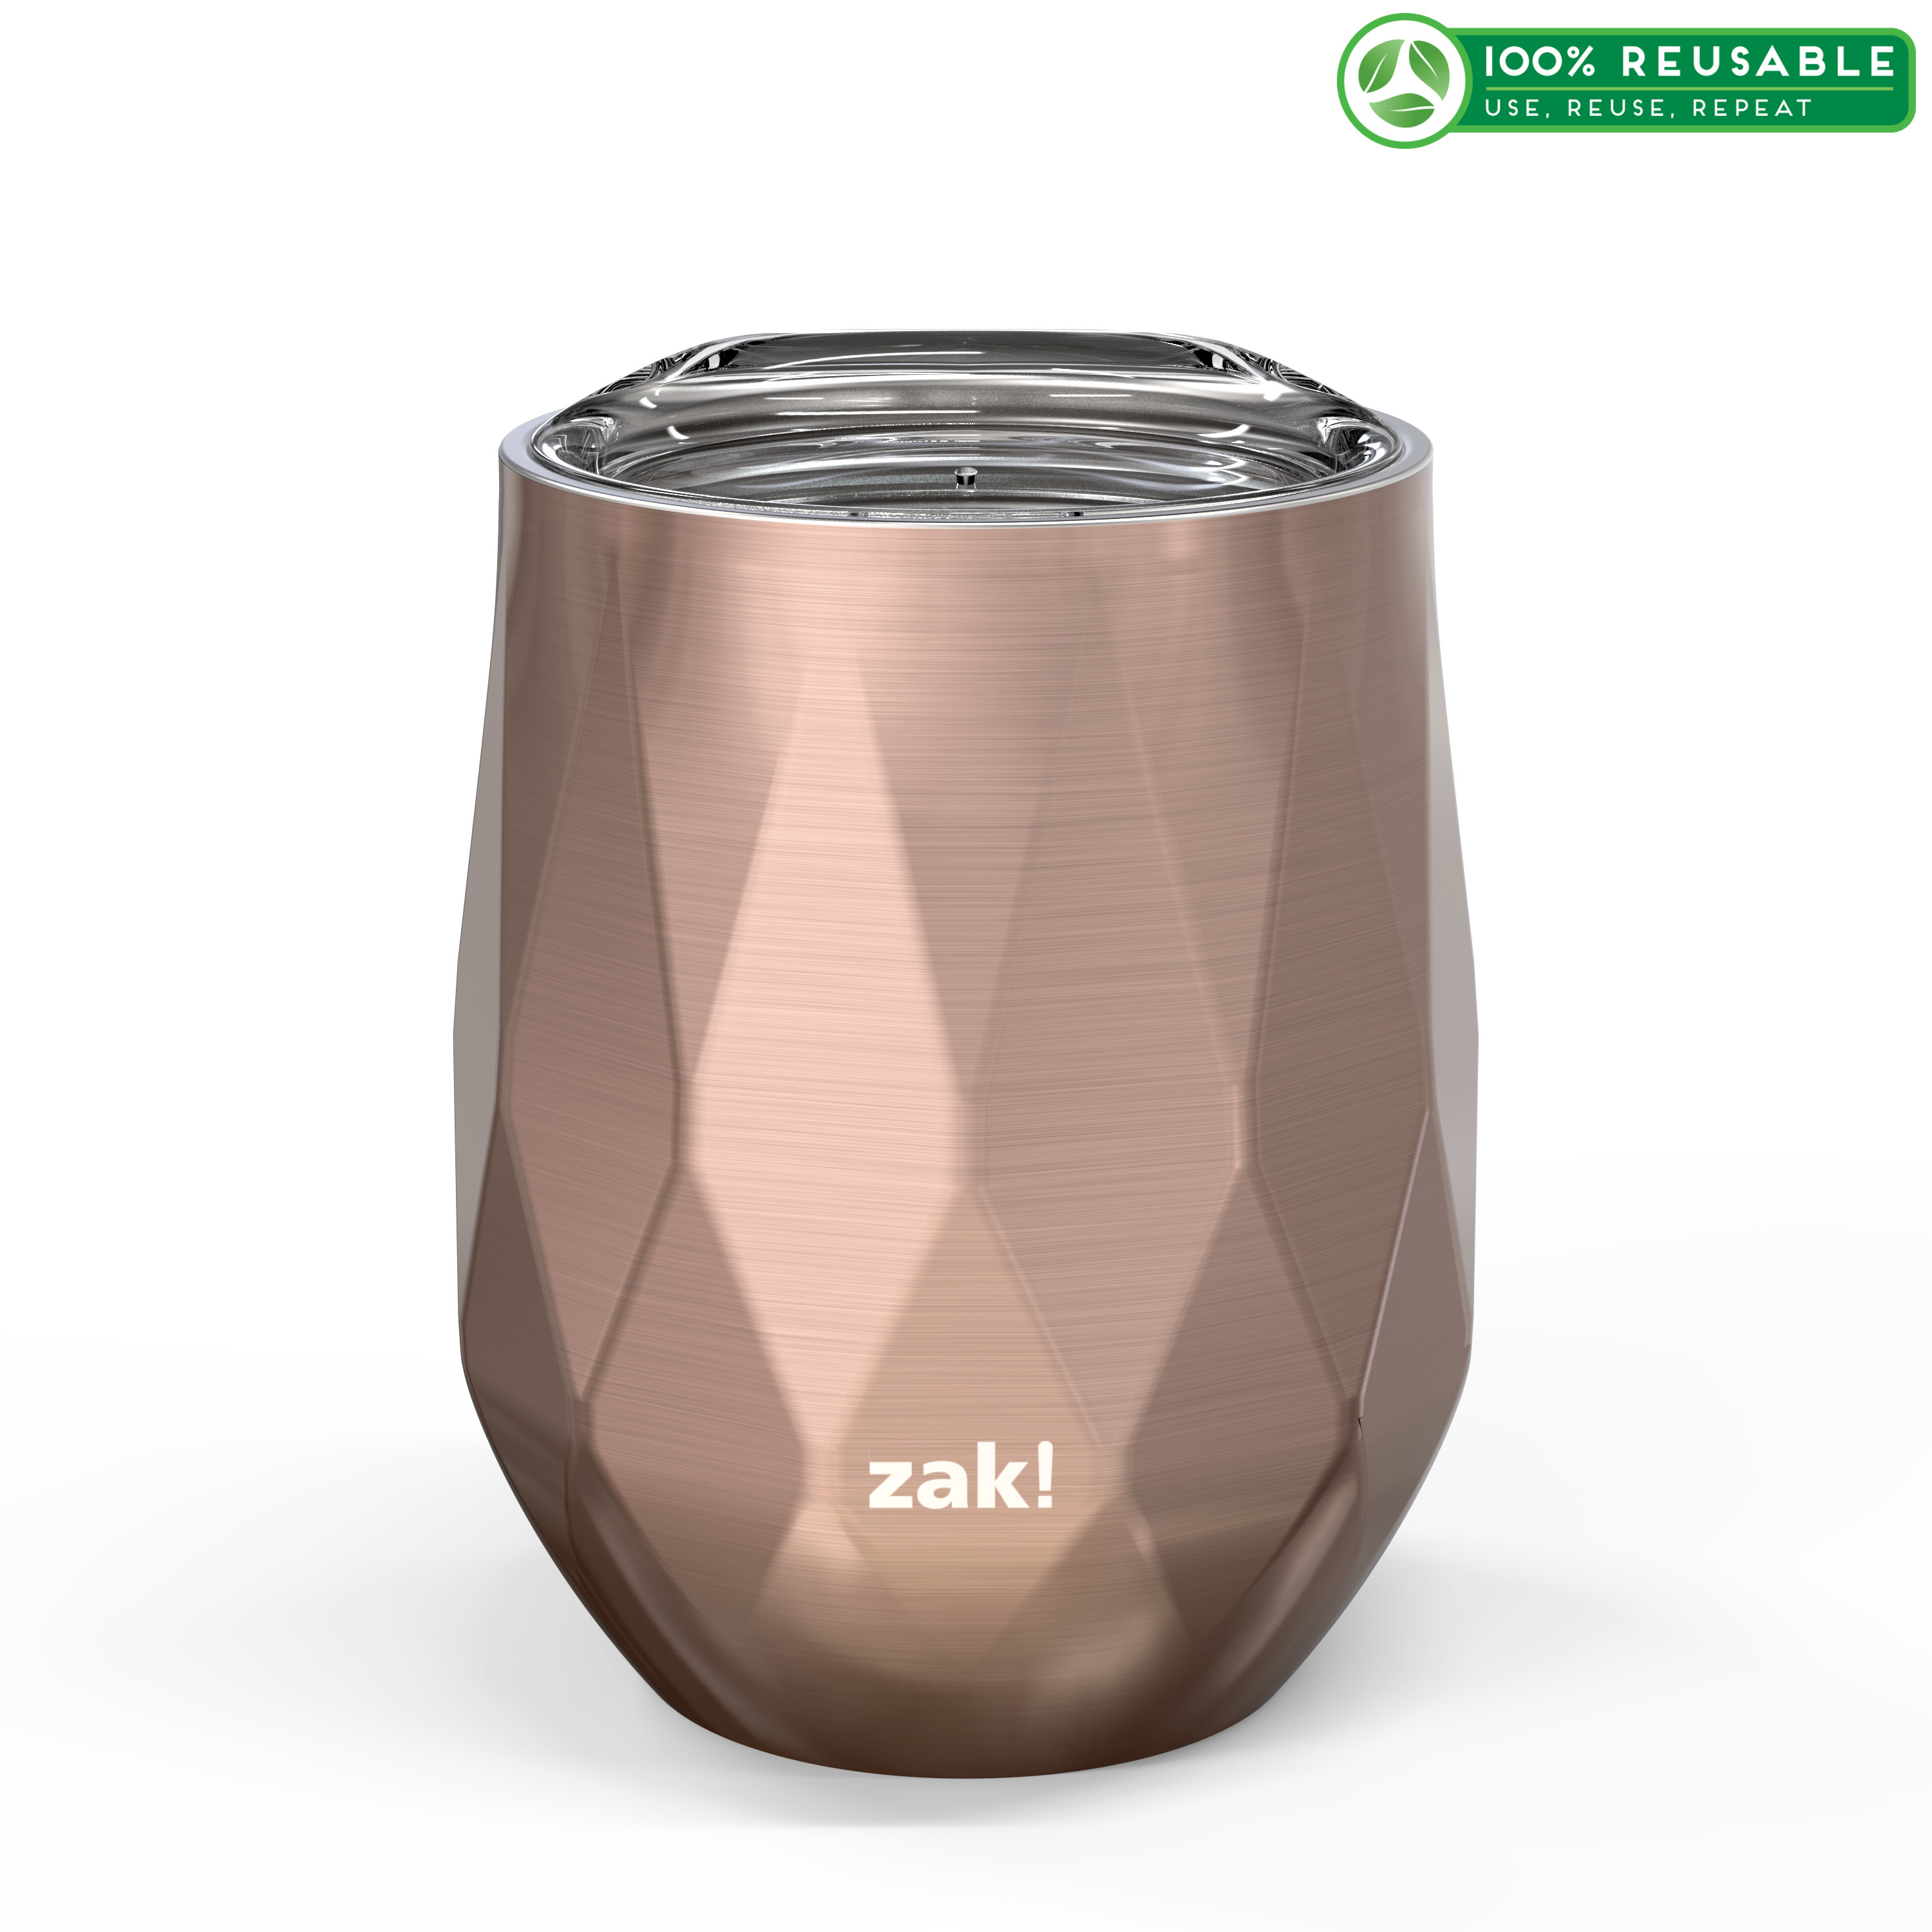 Fractal 11 ounce Vacuum Insulated Stainless Steel Tumbler, Rose Gold slideshow image 1